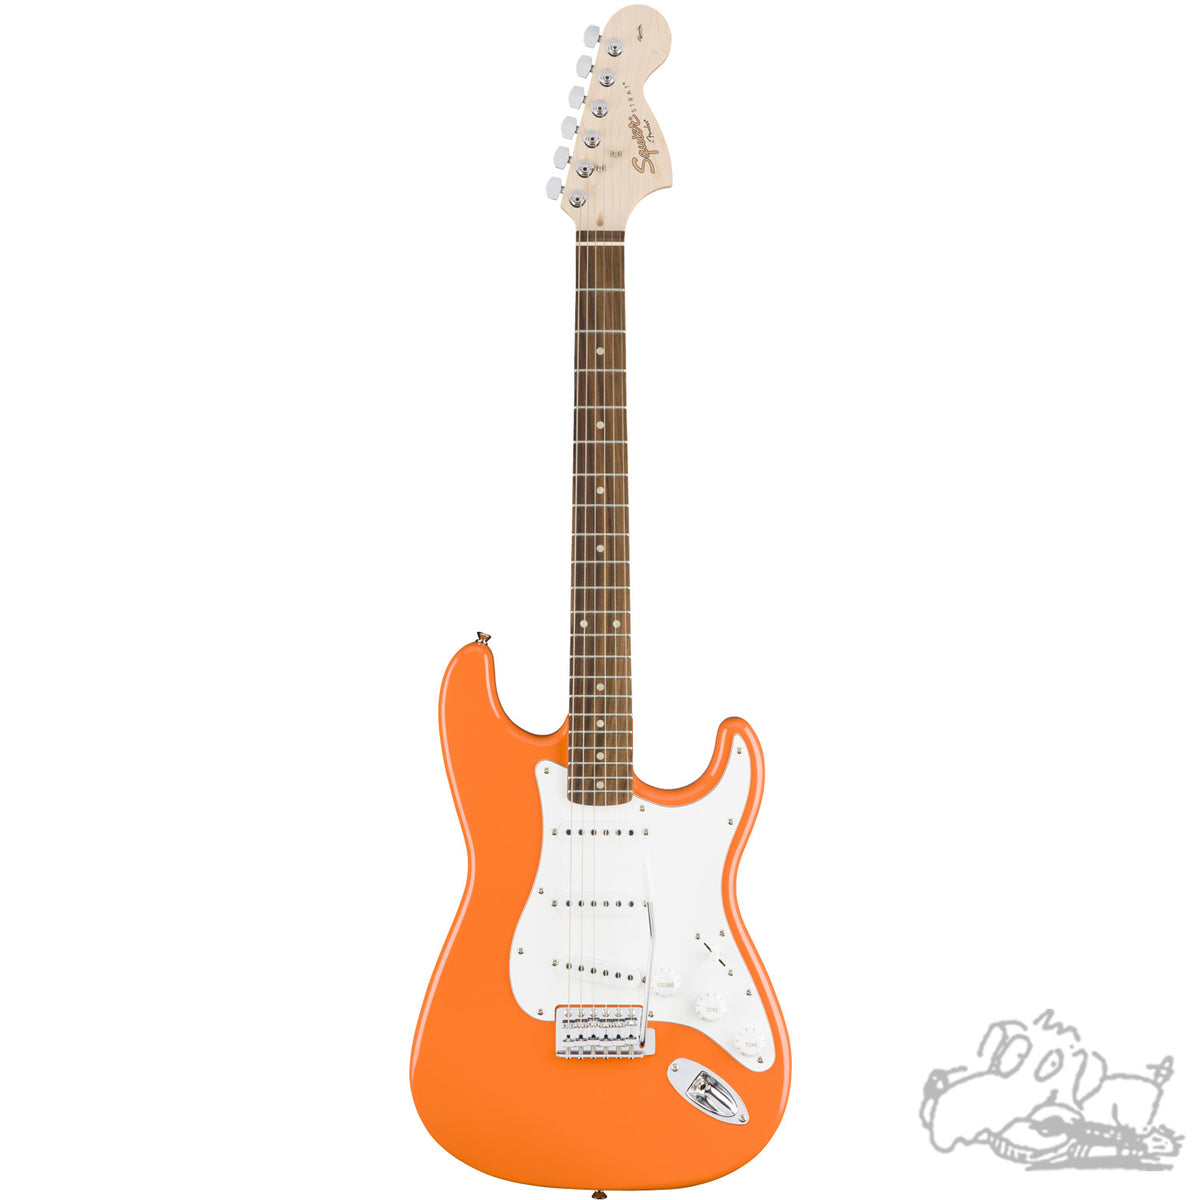 Squier Affinity Stratocaster - Assorted Colors